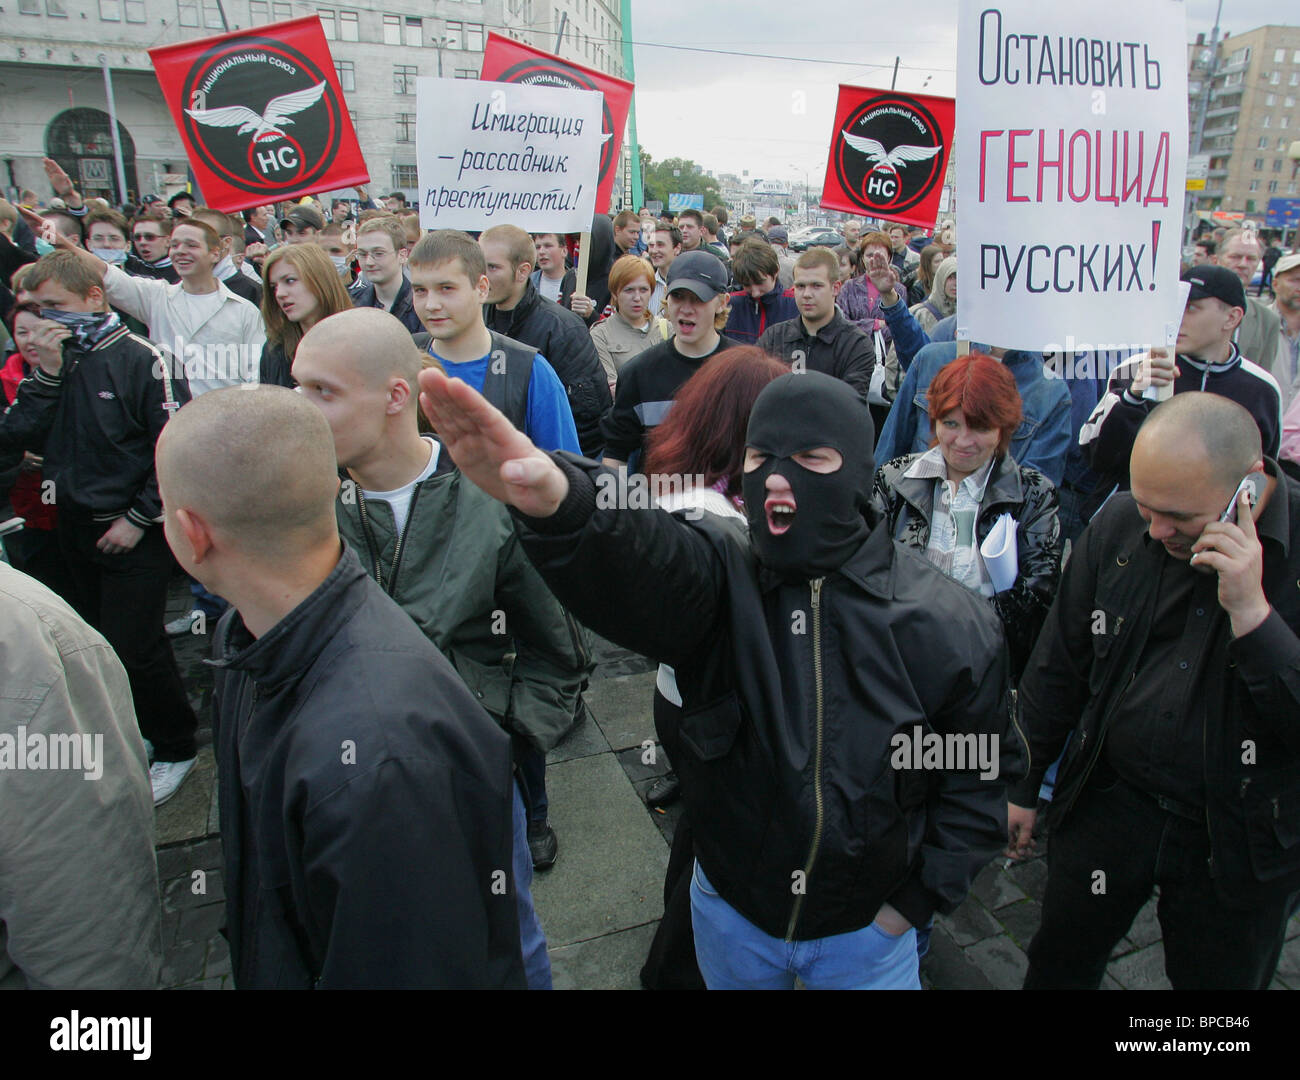 Muscovites rally against ethnic crime - Stock Image